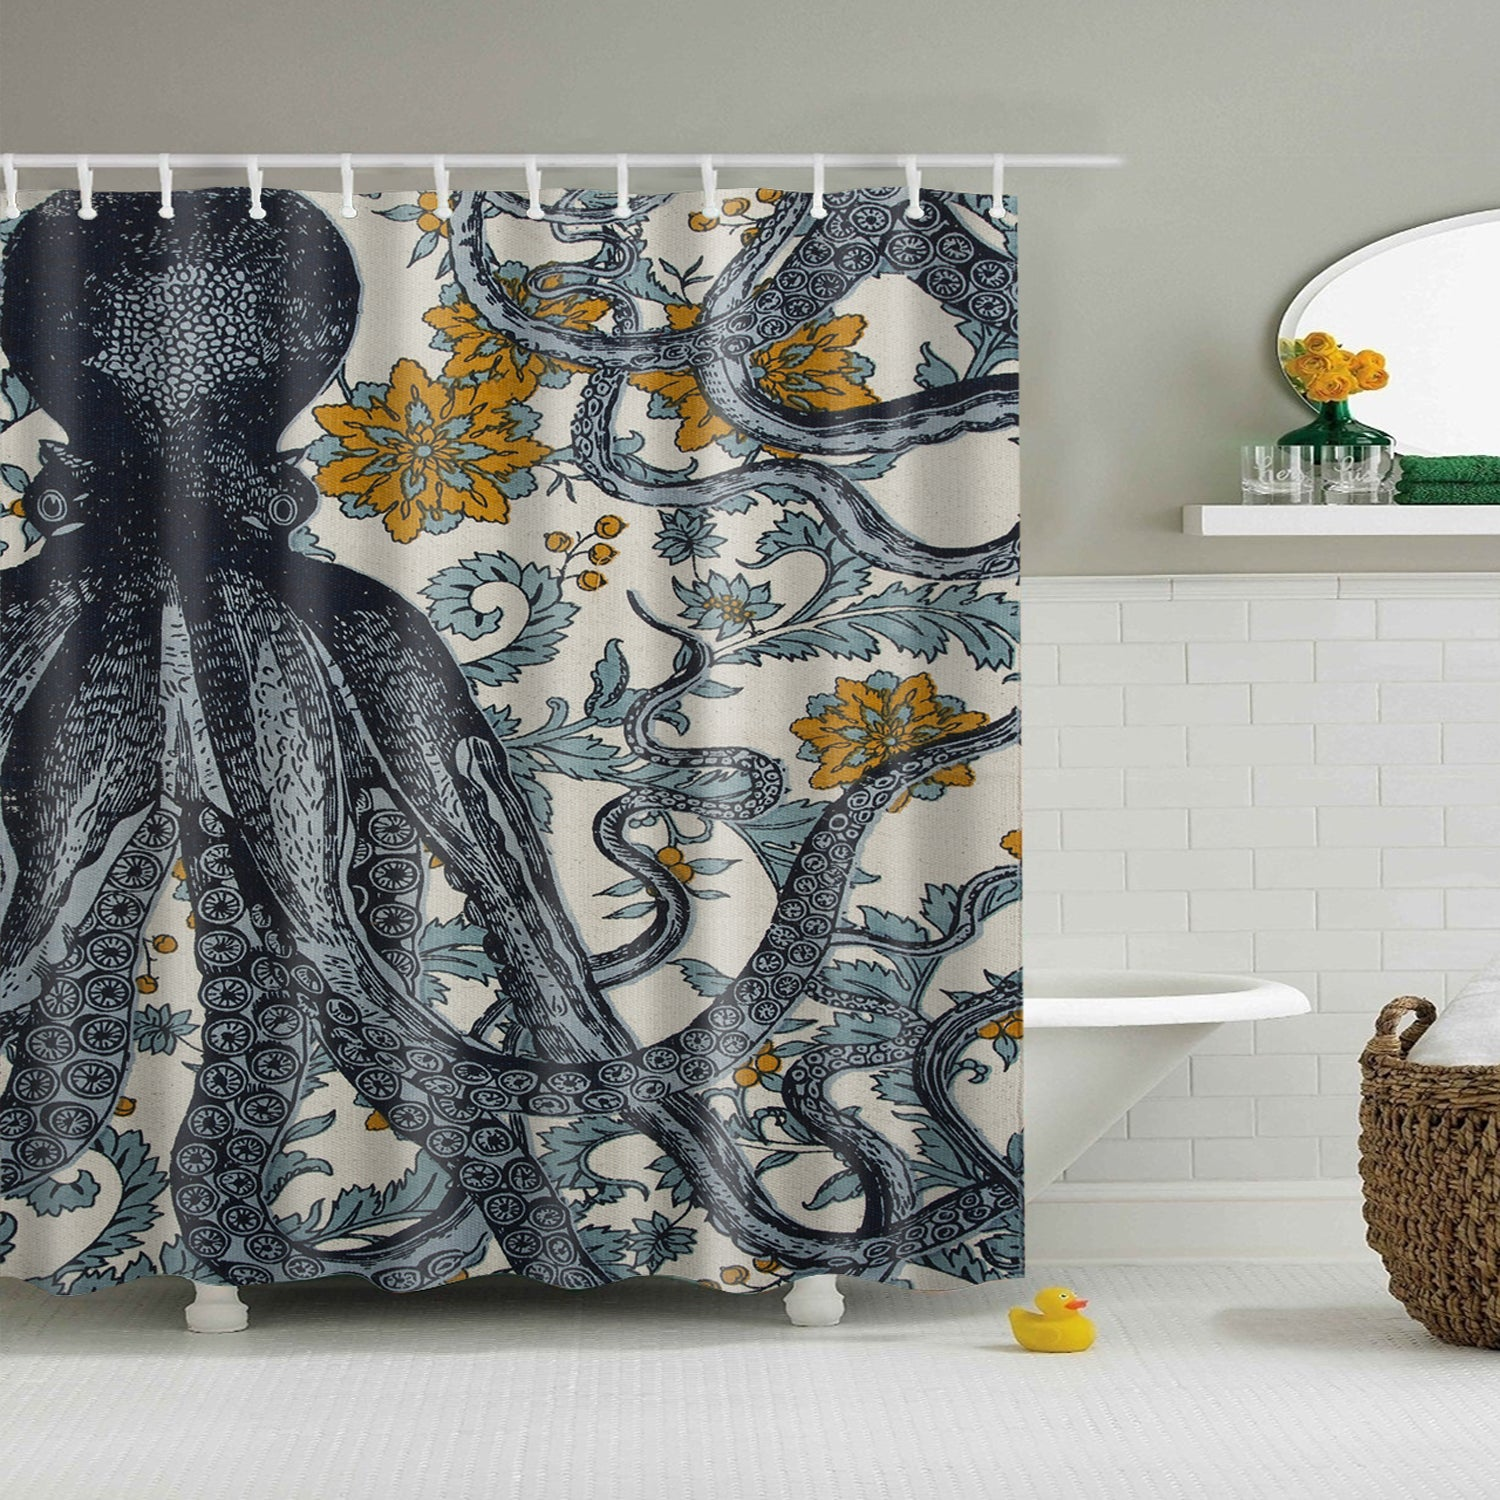 Thomas Paul Blue Octopus Fabric Polyester Shower Curtain